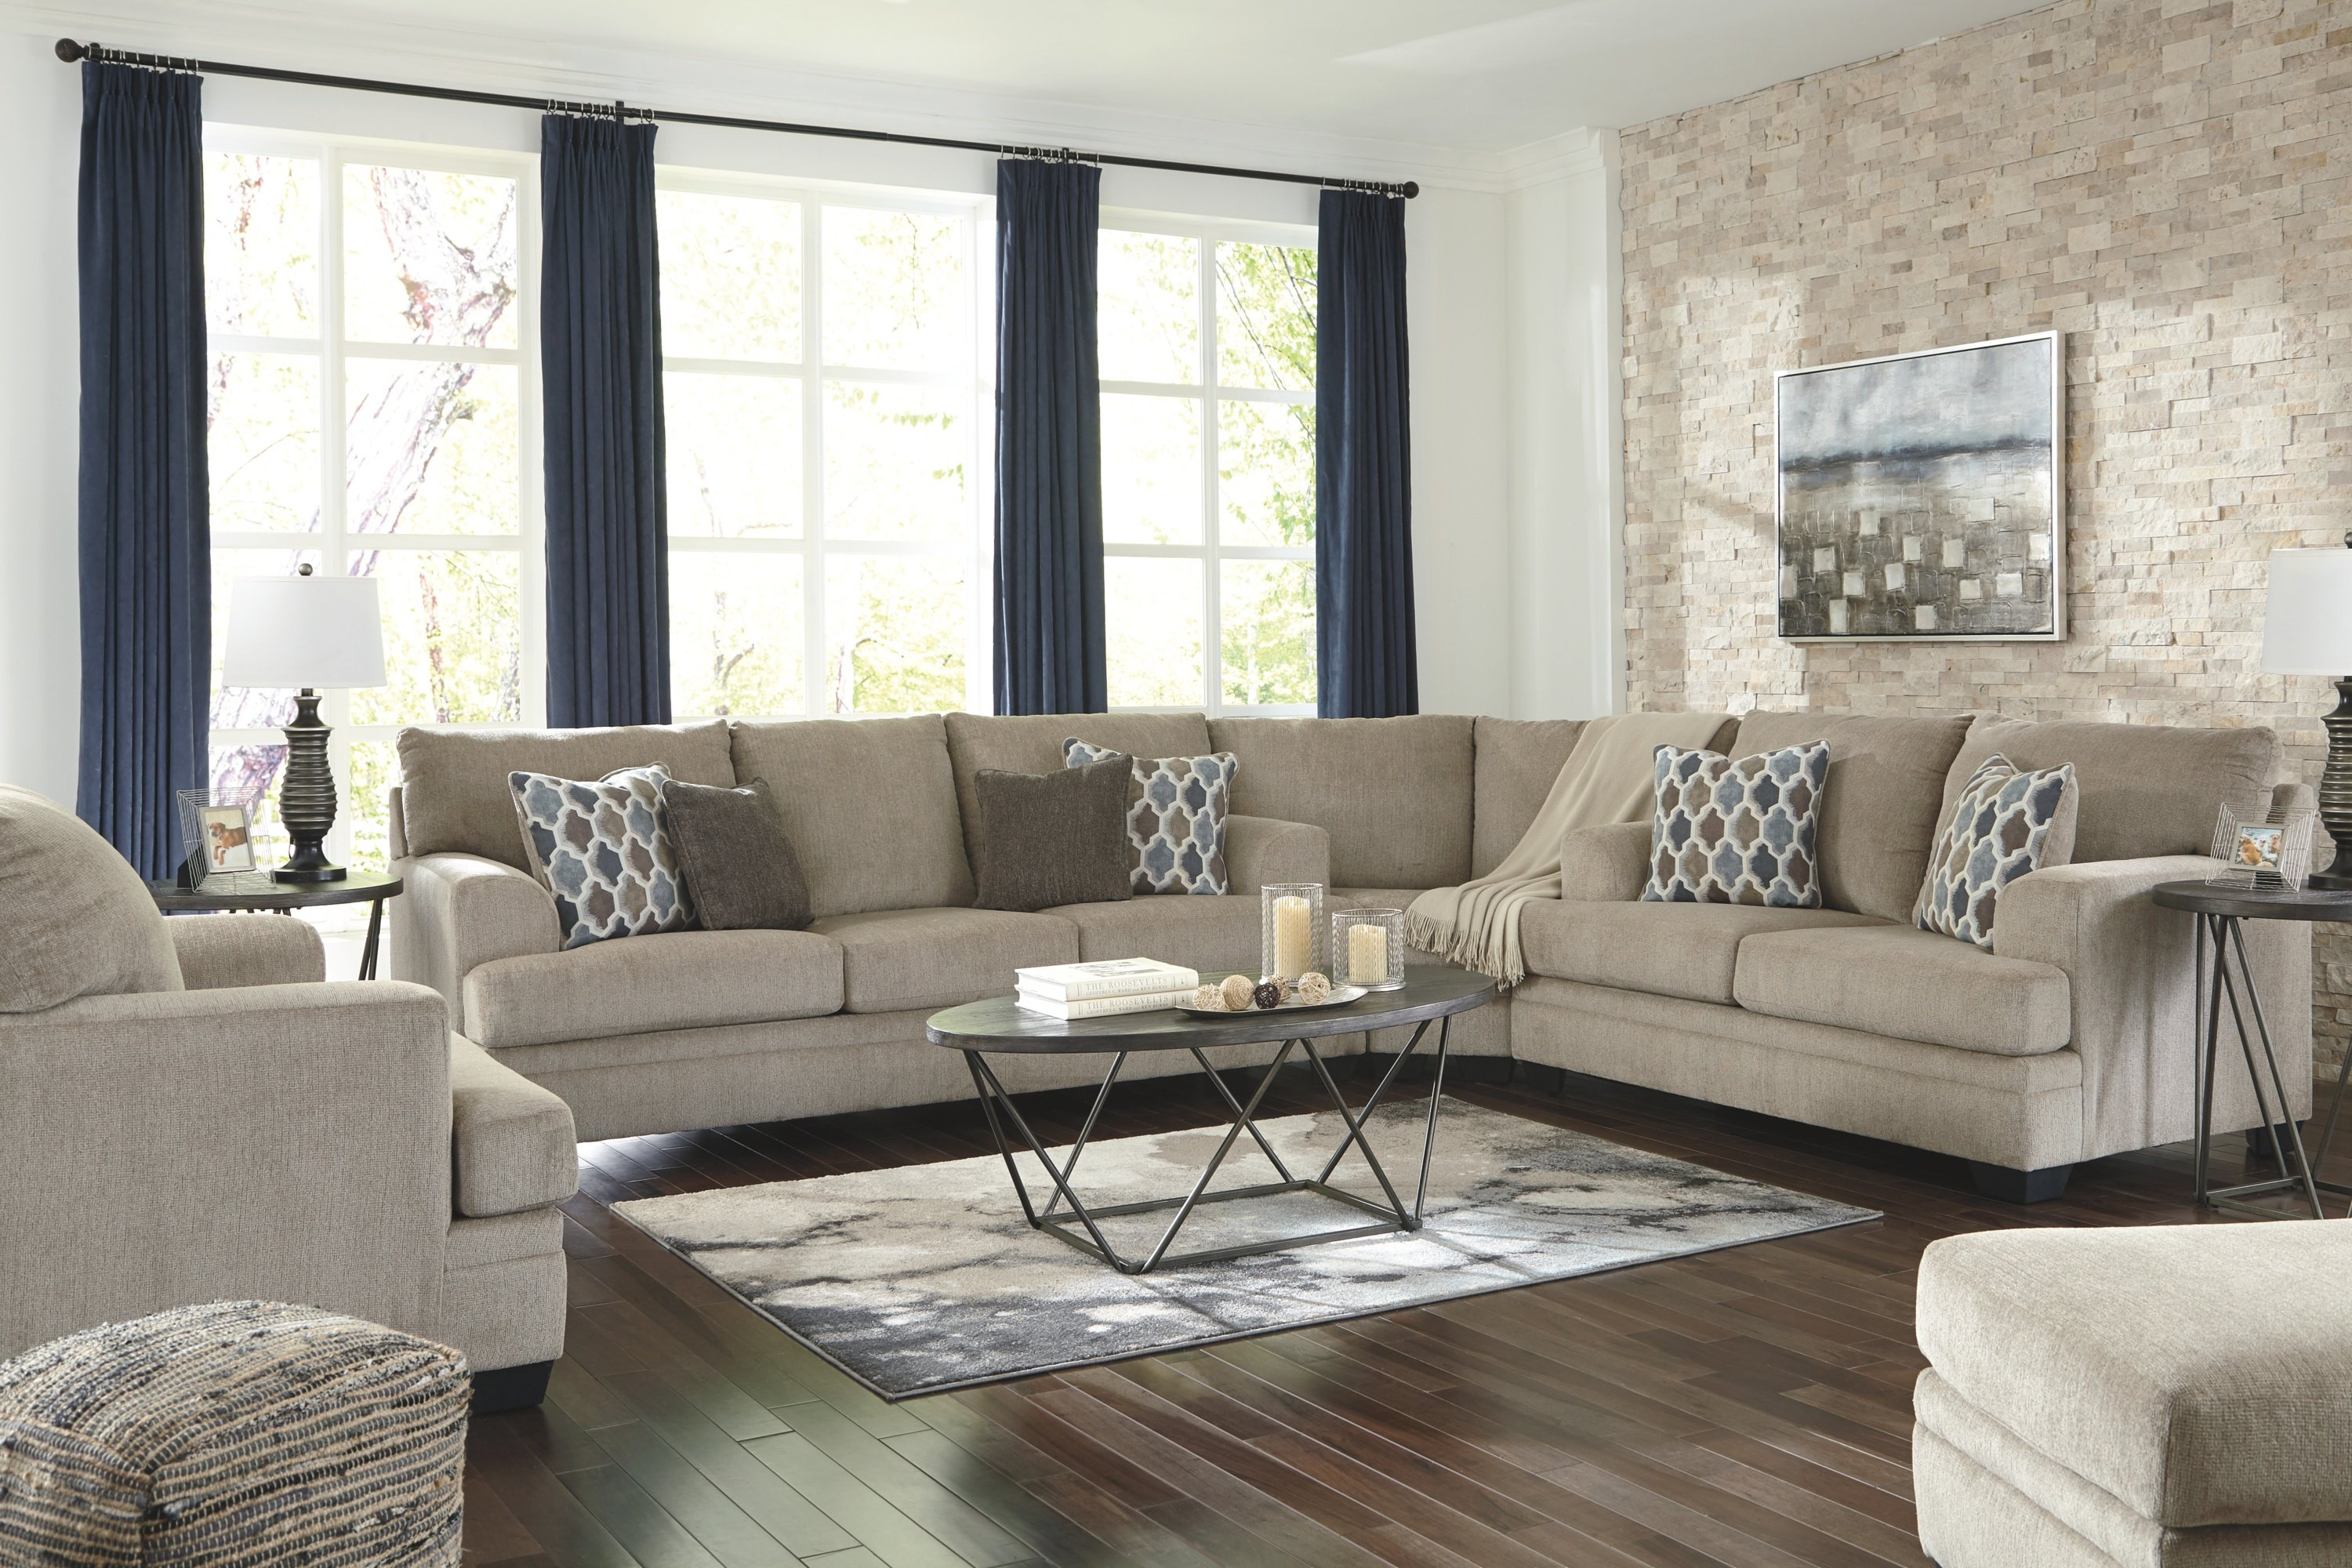 Robn Sleeper Configurable Living Room Set within 14 Awesome Tricks of How to Makeover Sleeper Living Room Set